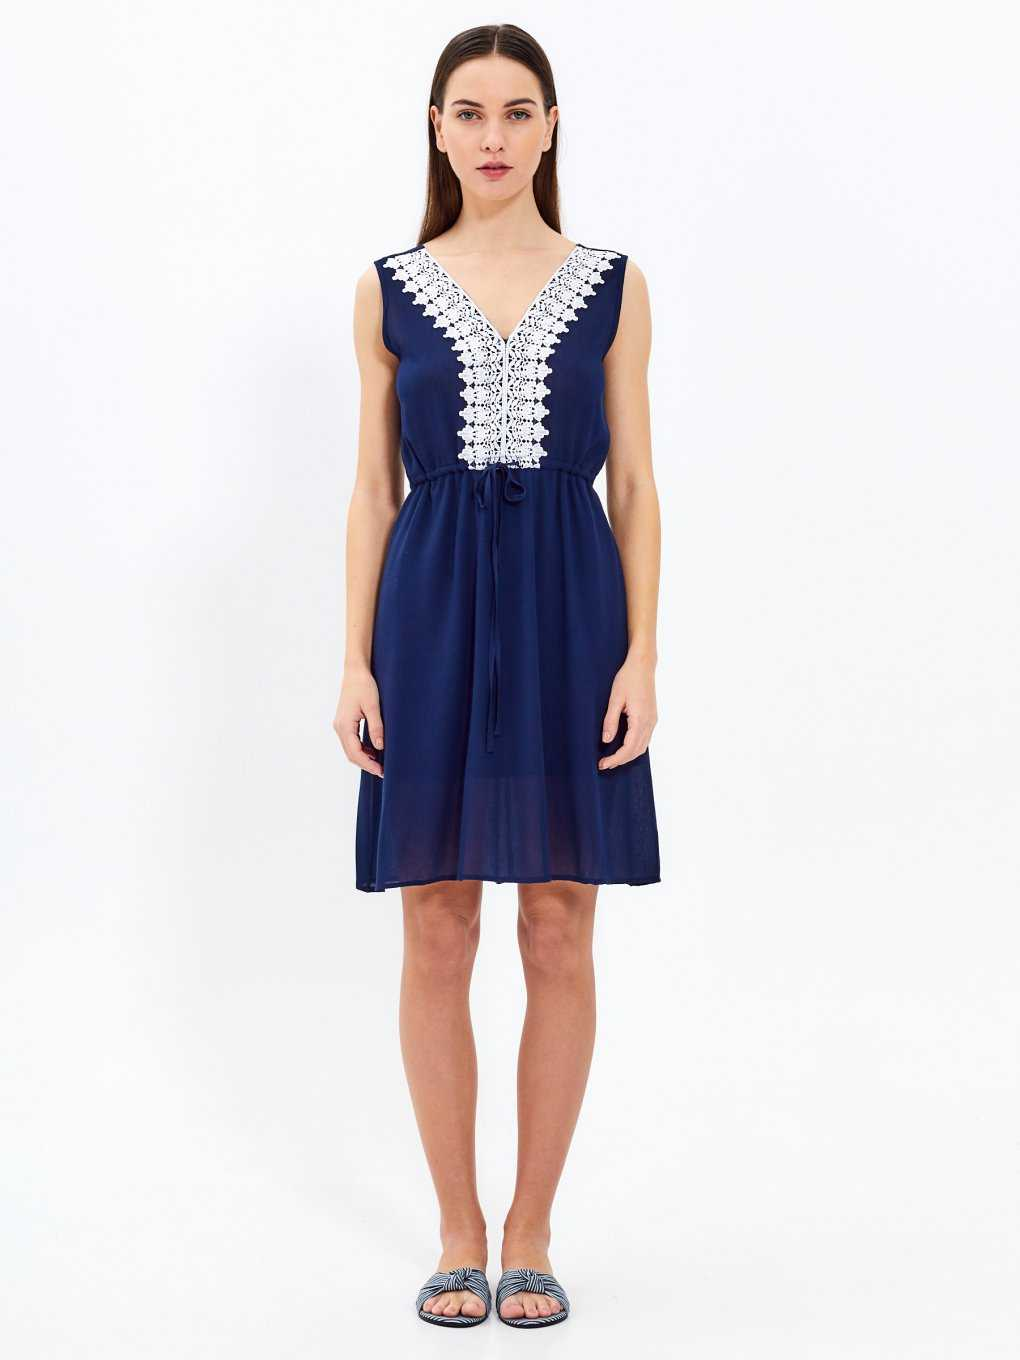 Sleeveless dress with contrast croched detail